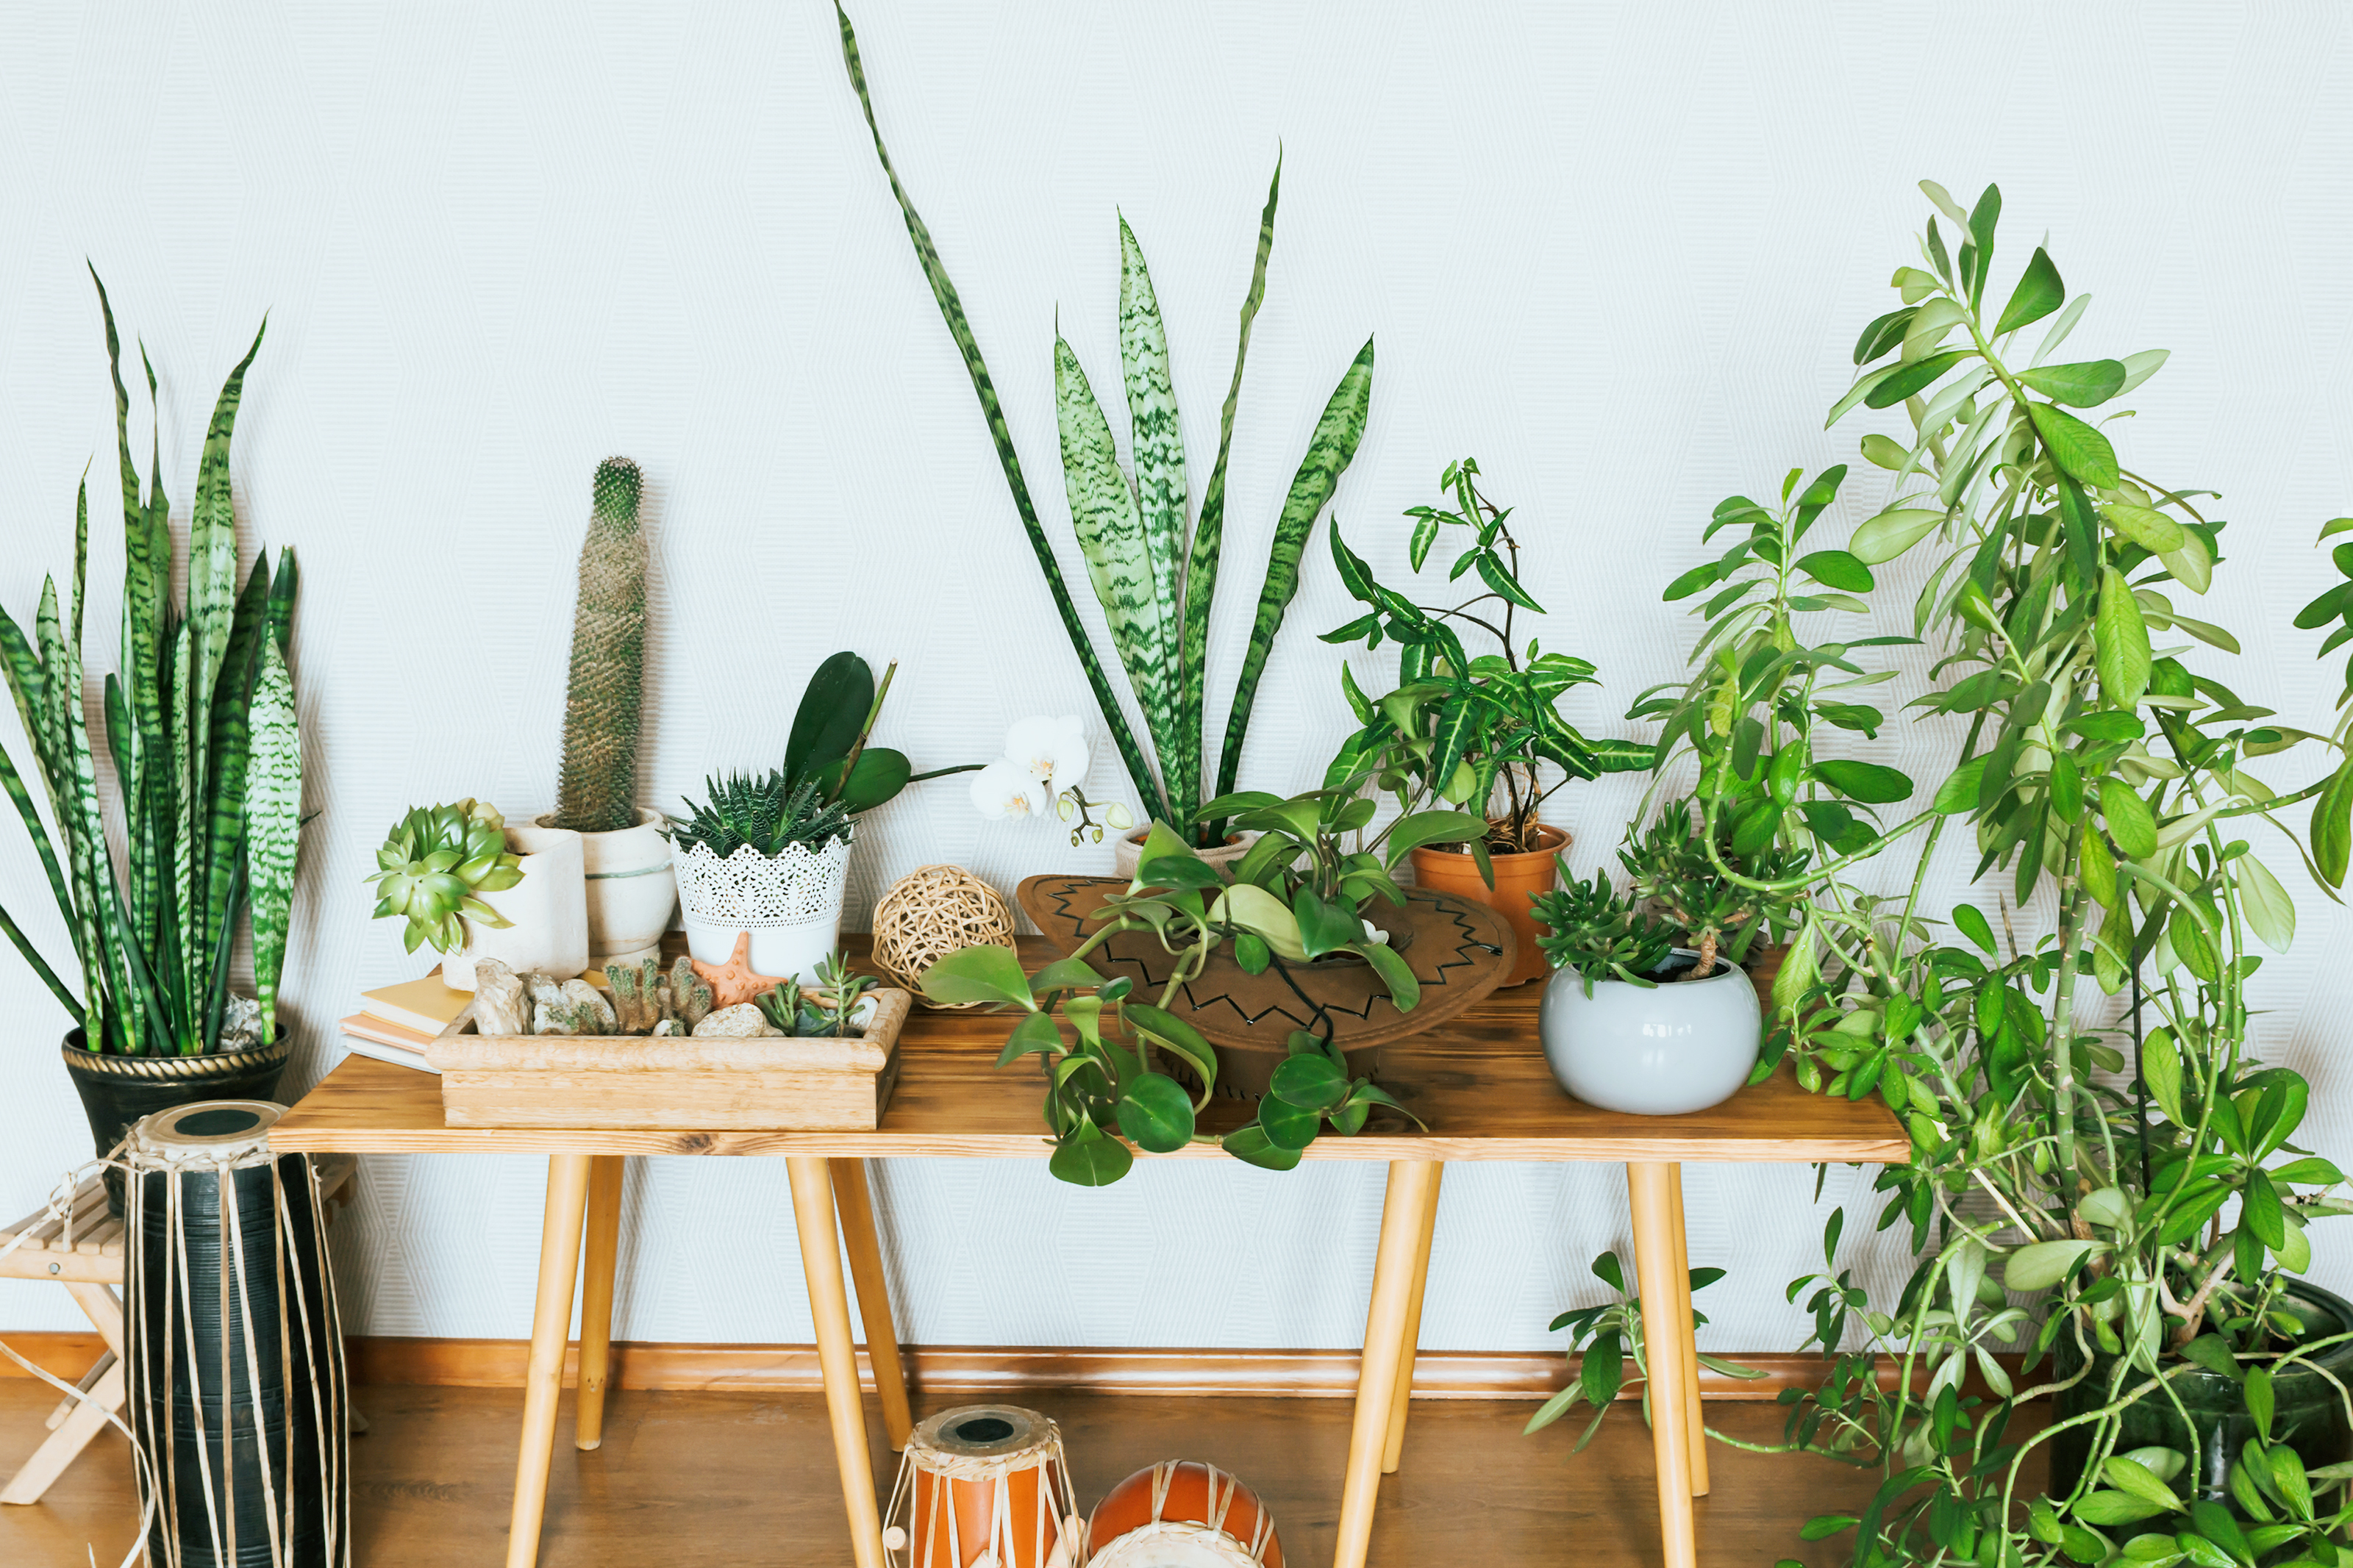 Keeping house plants and watering with recycled water is one of many great eco-friendly habits